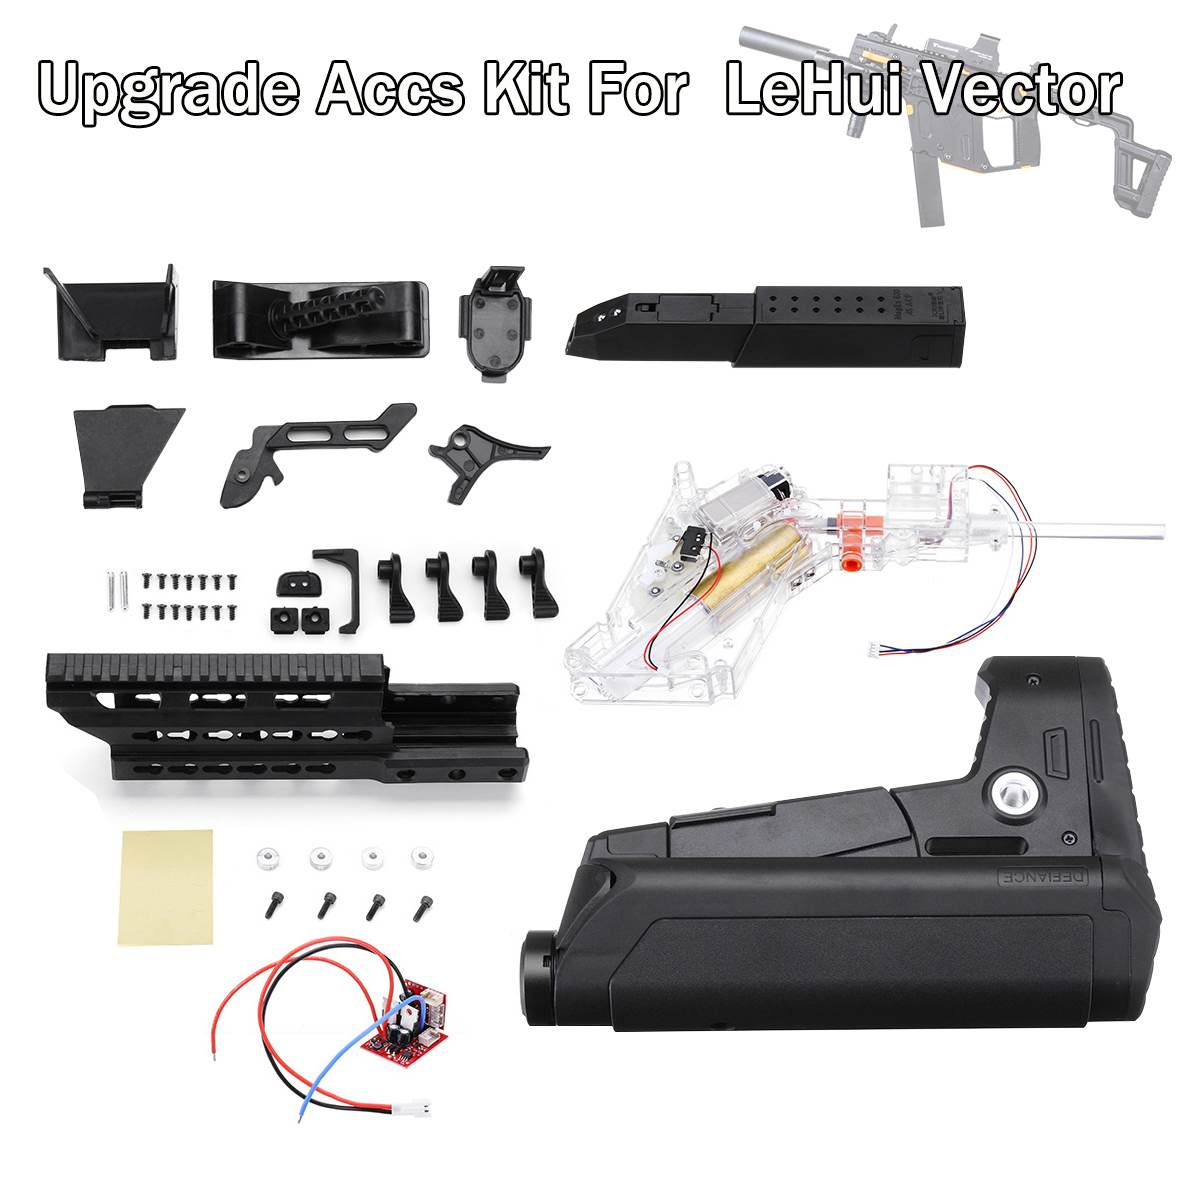 US $5 39 |Magazine Modified Parts for LeHui Vector V2 Gel Ball for Blaster  Water for Gun Upgrade Accs Kit-in Toy Guns from Toys & Hobbies on